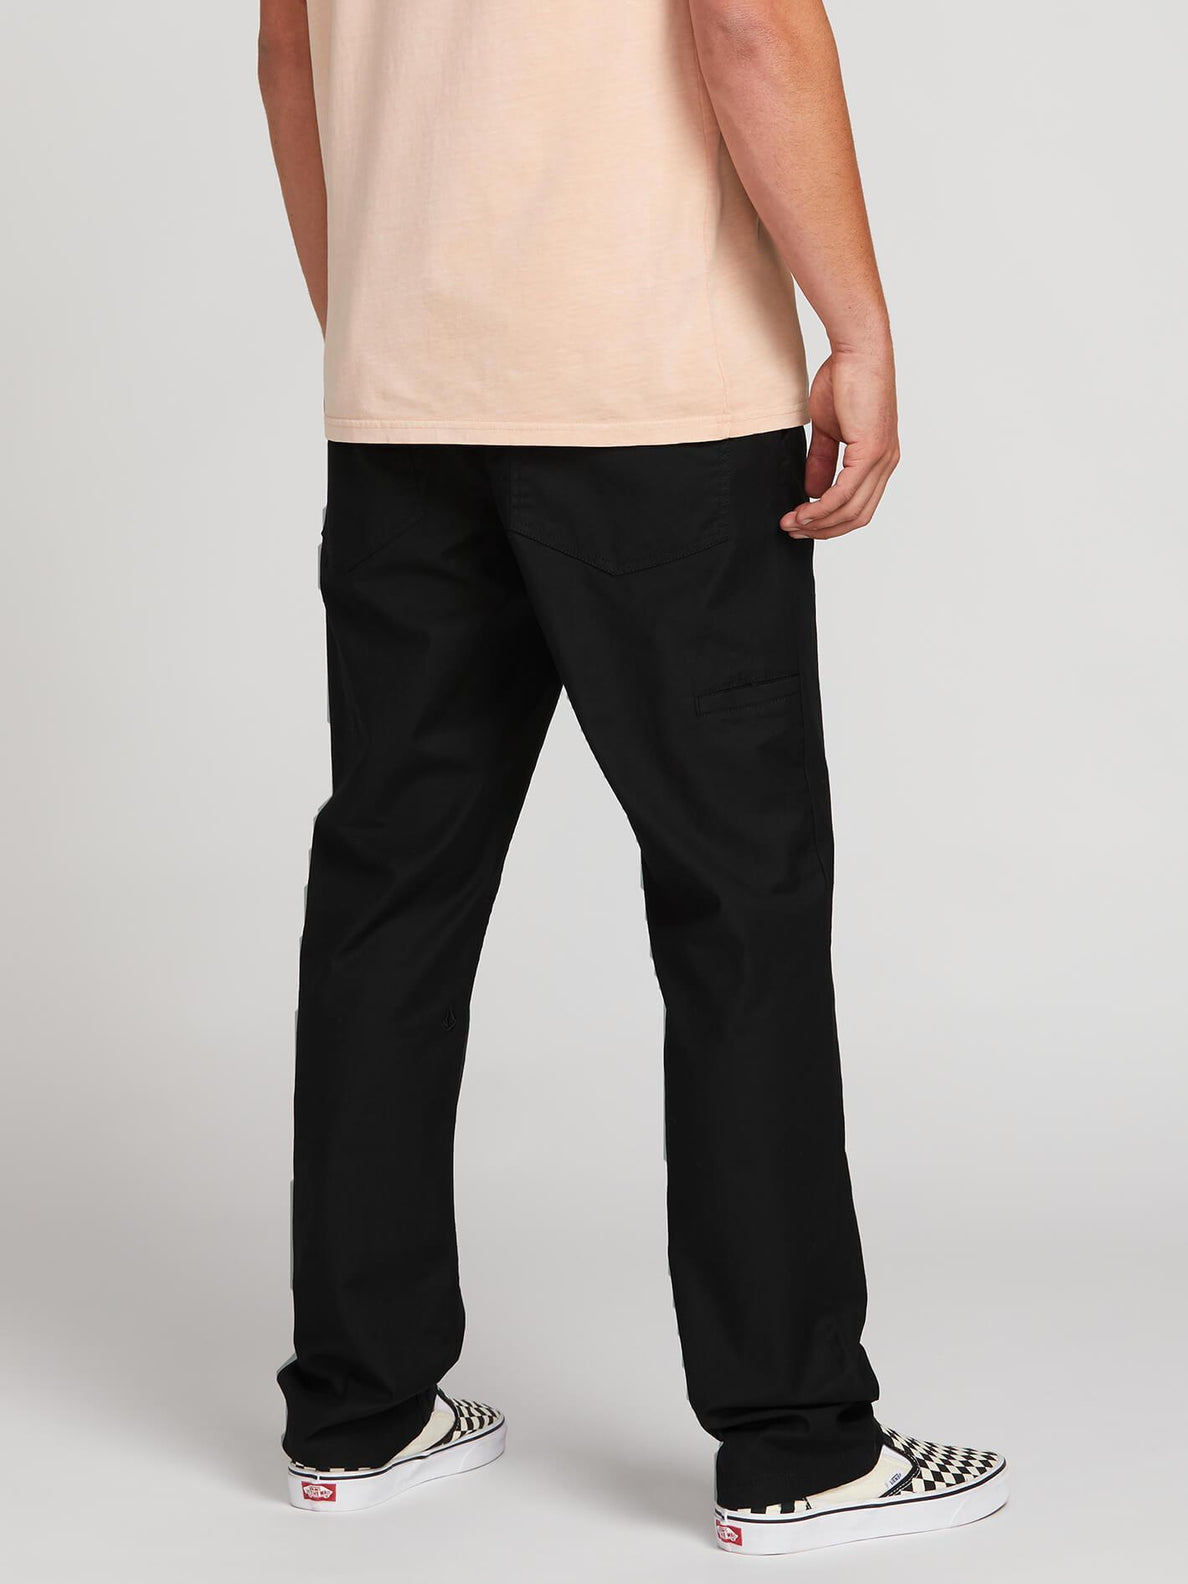 RISER COMFORT CHINO (A1221900_BLK) [2]